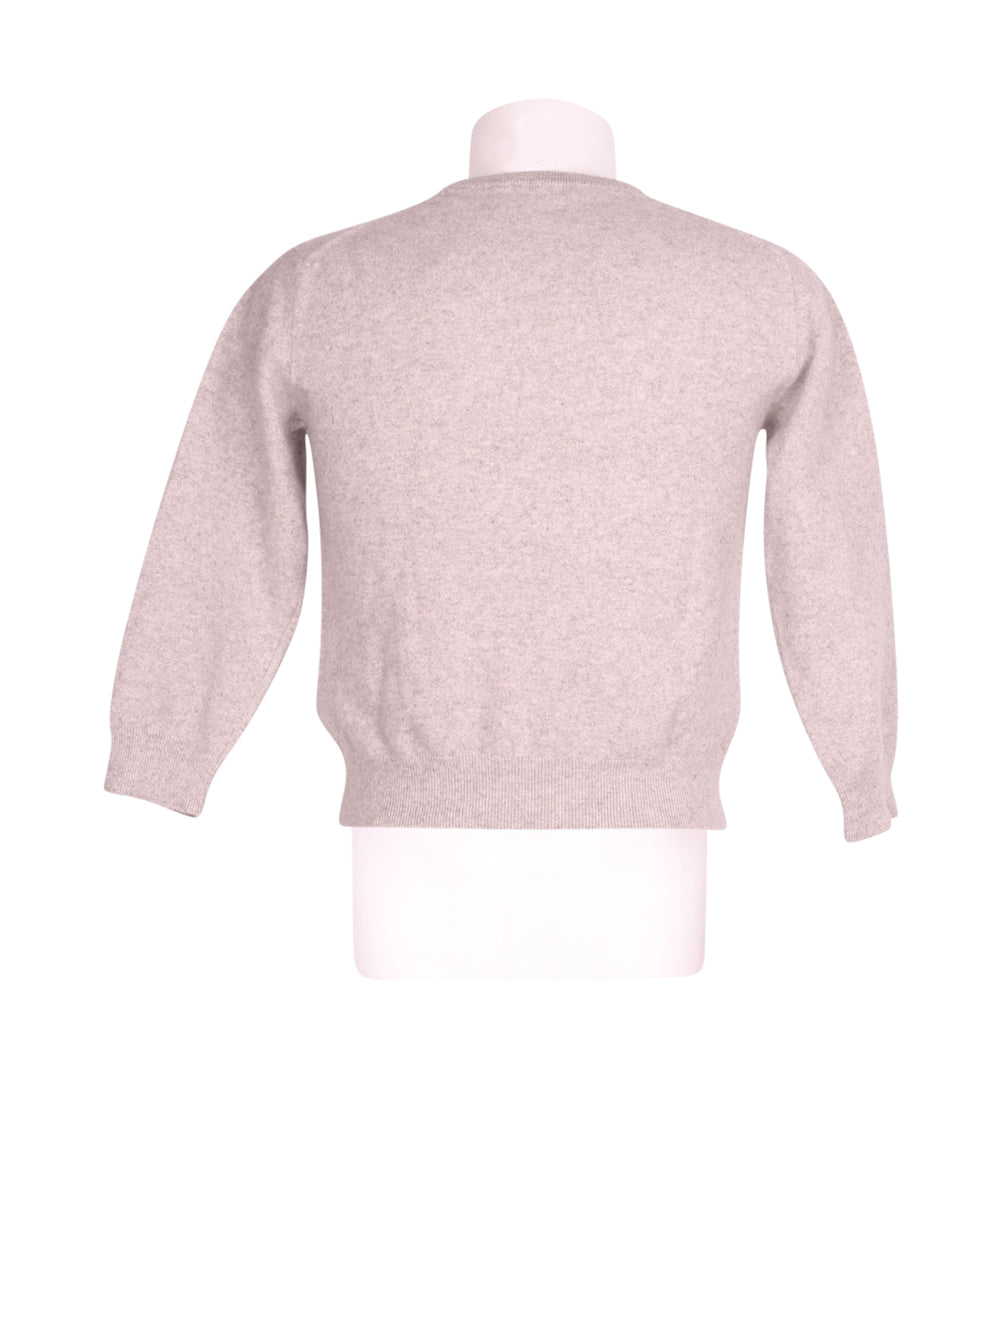 Back photo of Preloved Pierre Cardin Grey Man's sweater - size 38/M